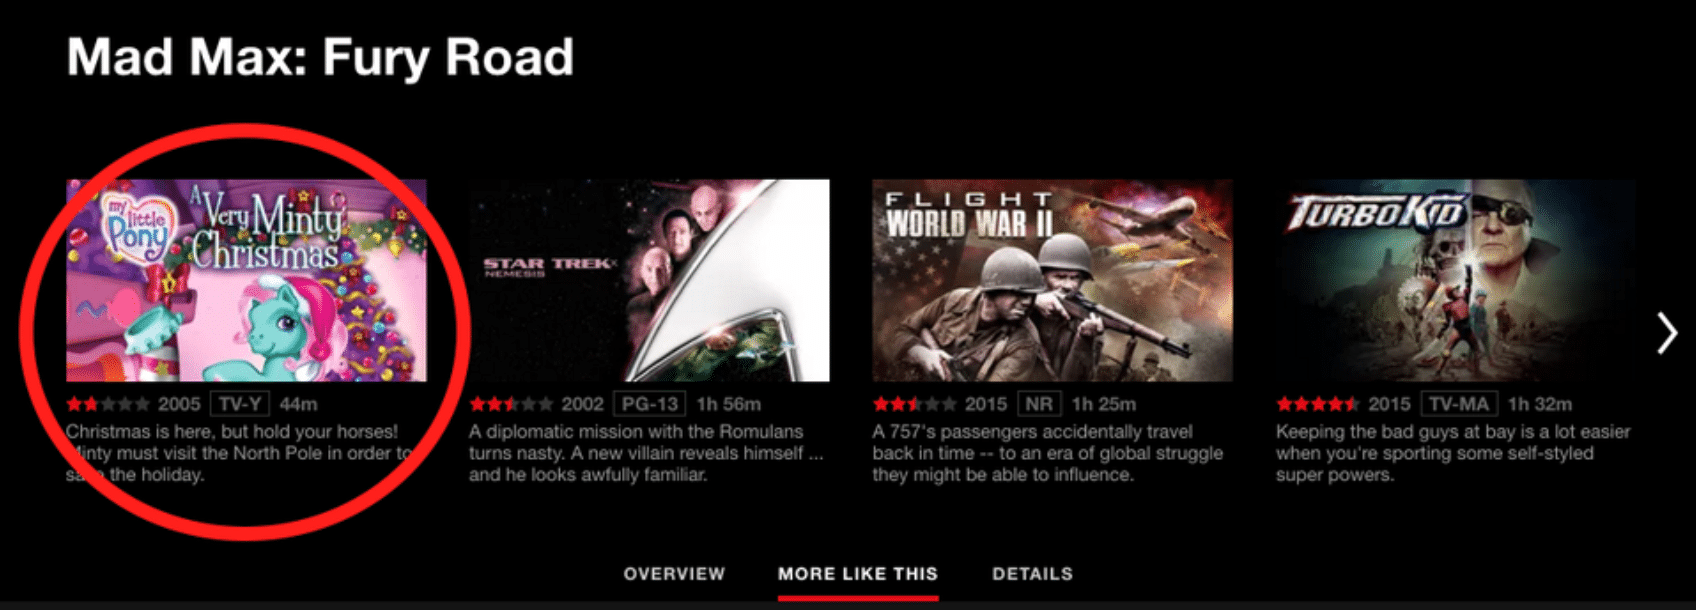 The movies Netflix recommends based on someones viewing of Mad Max: Fury Road.